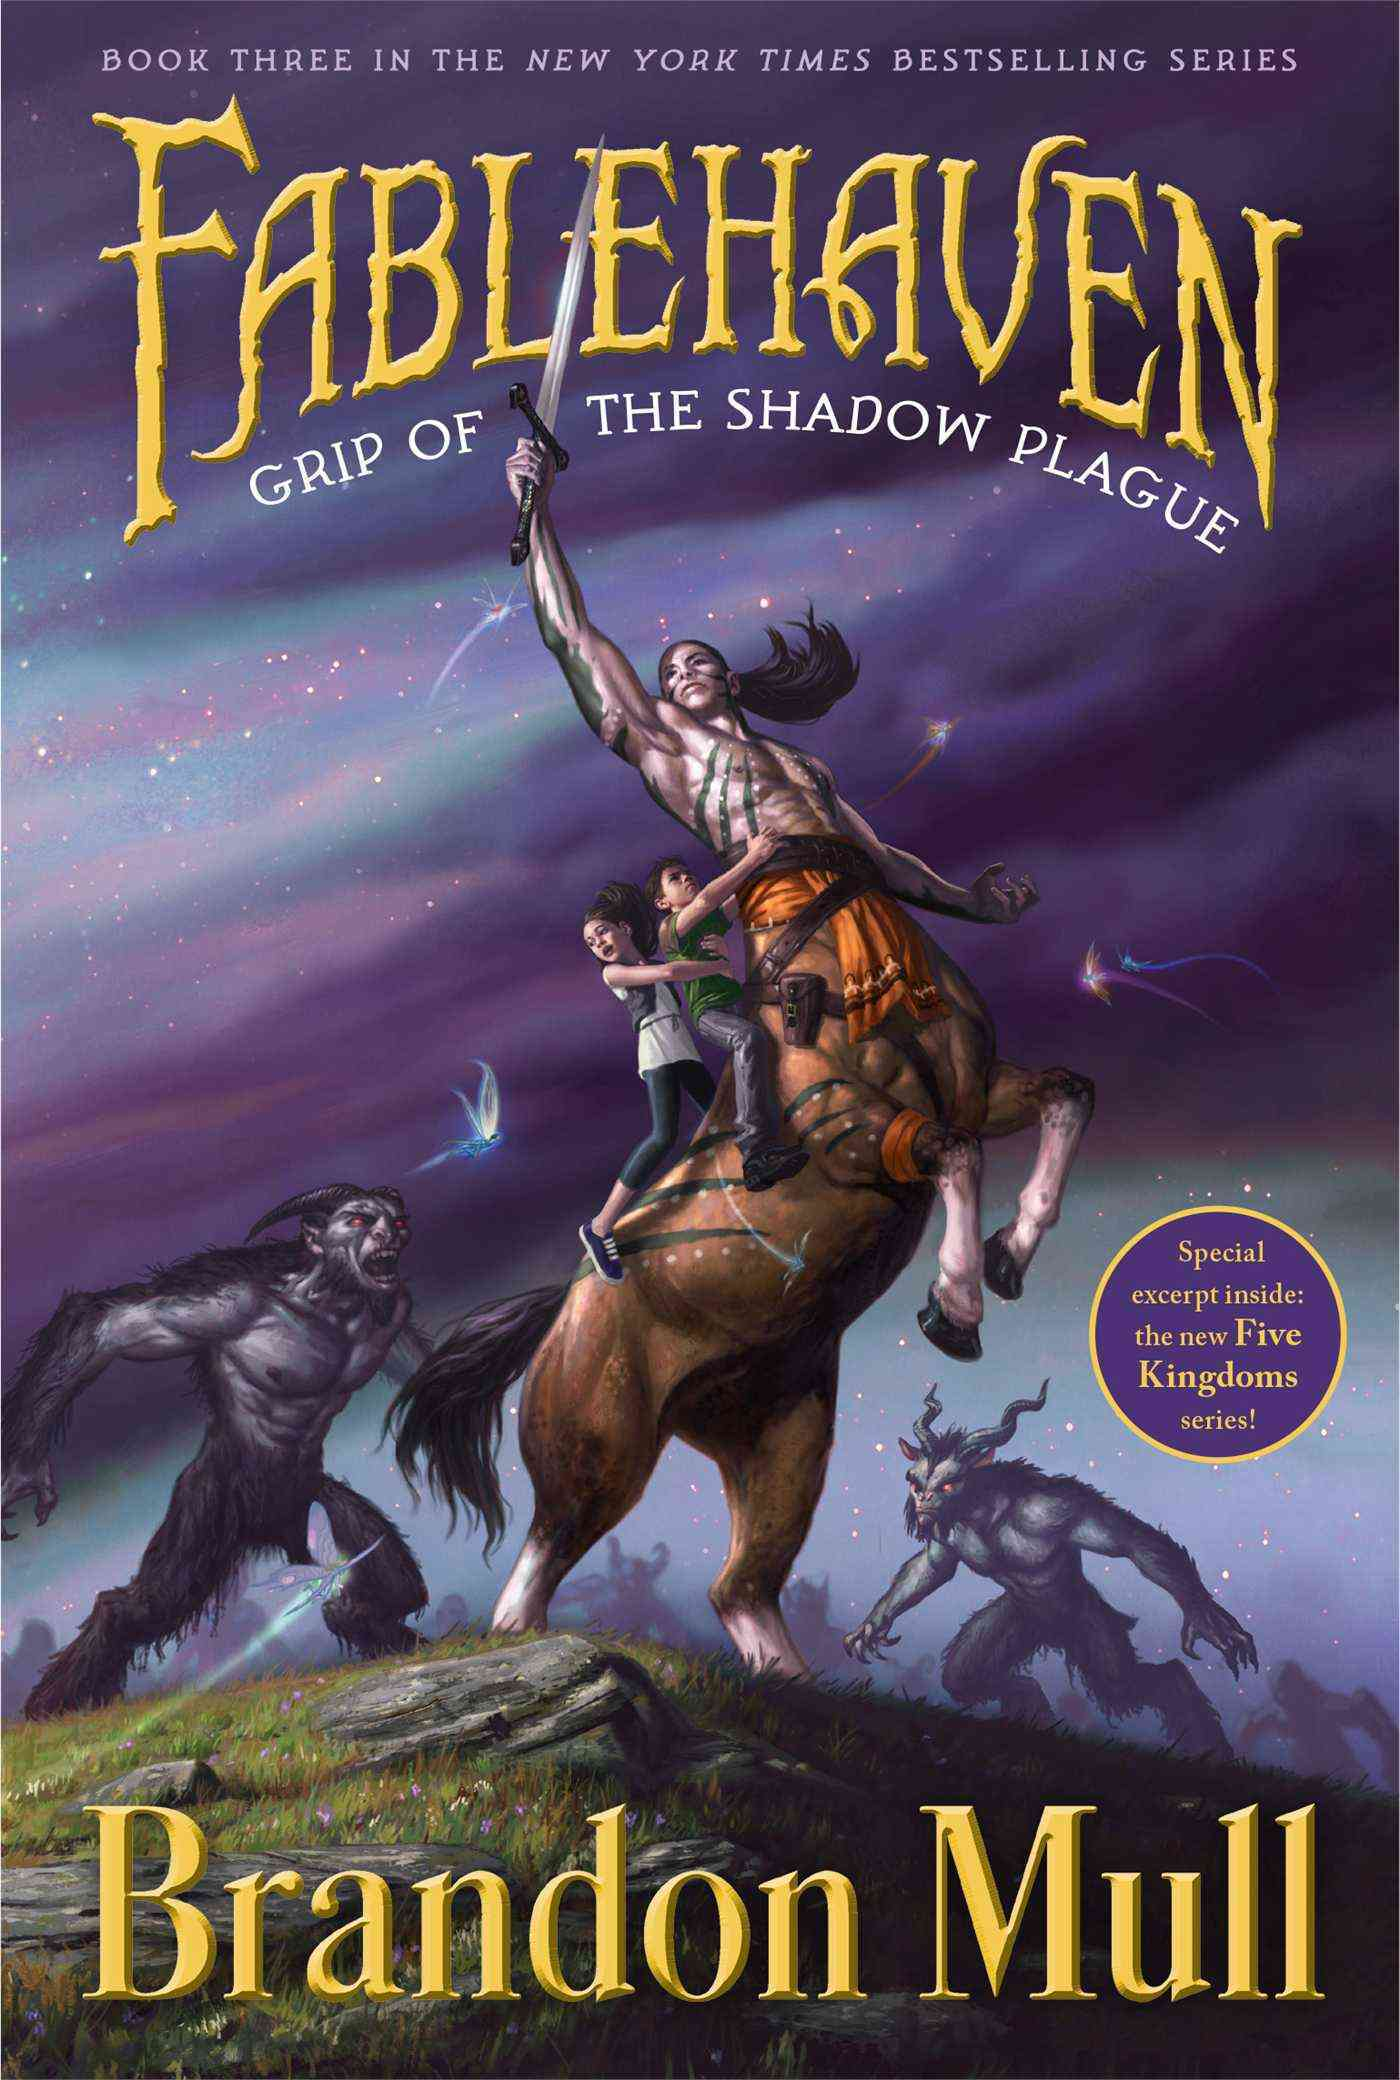 Grip of the Shadow Plague (Paperback)